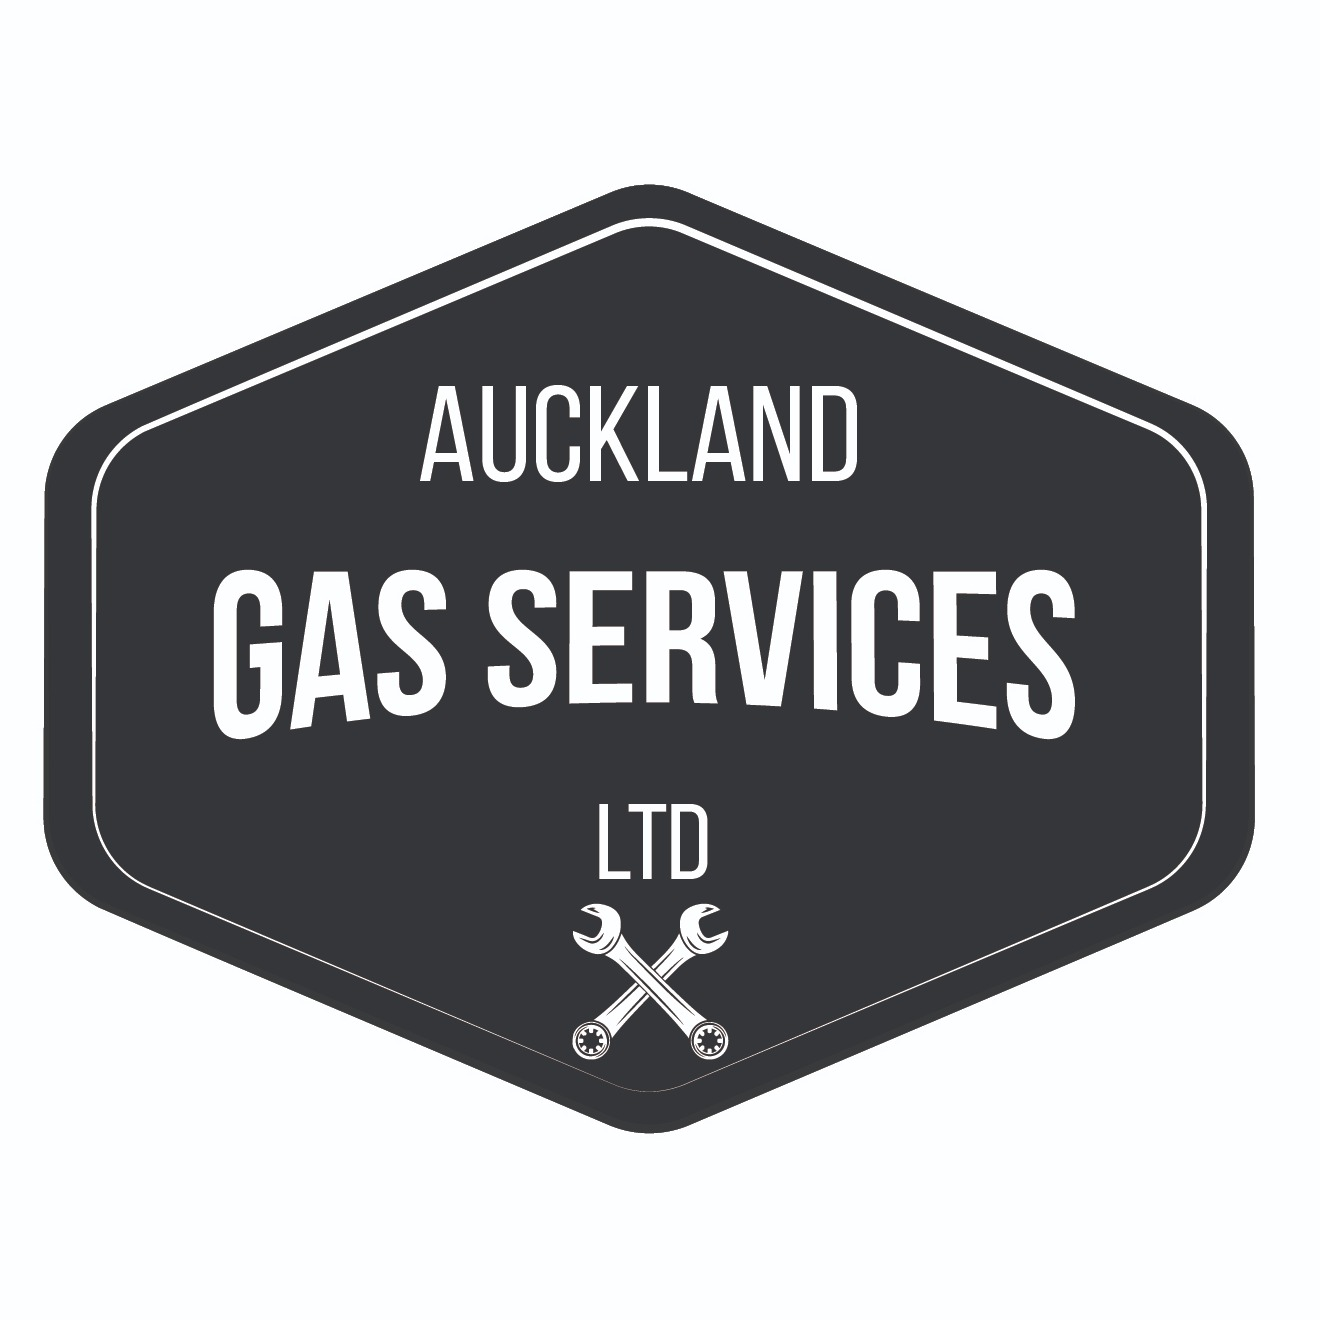 AUCKLAND GAS SERVICES LIMITED